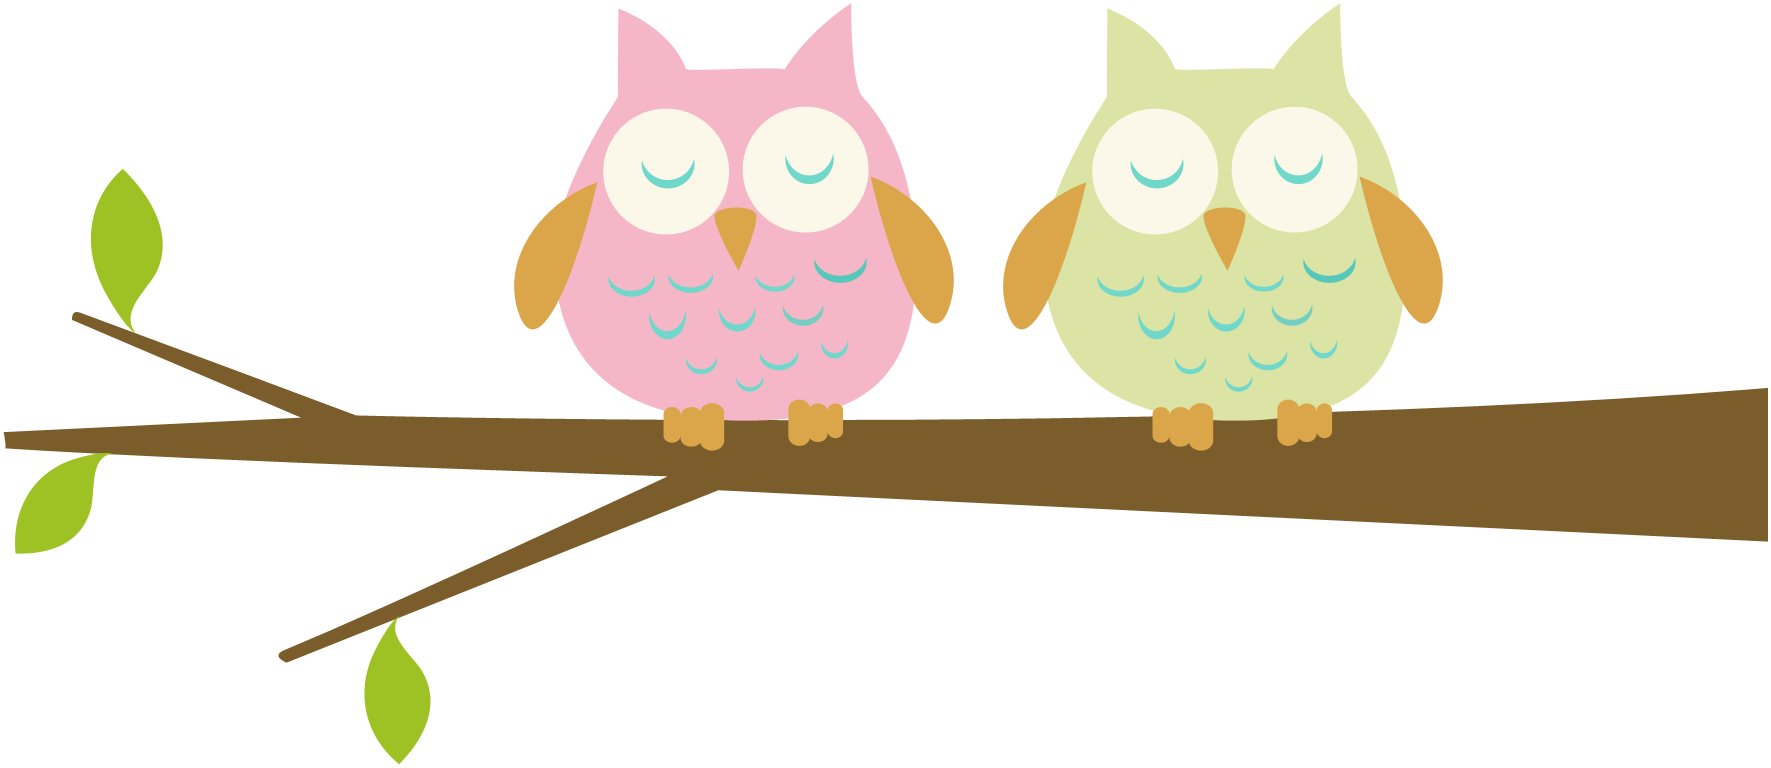 54 images of Snowy Owl Clip Art . You can use these free cliparts for ...